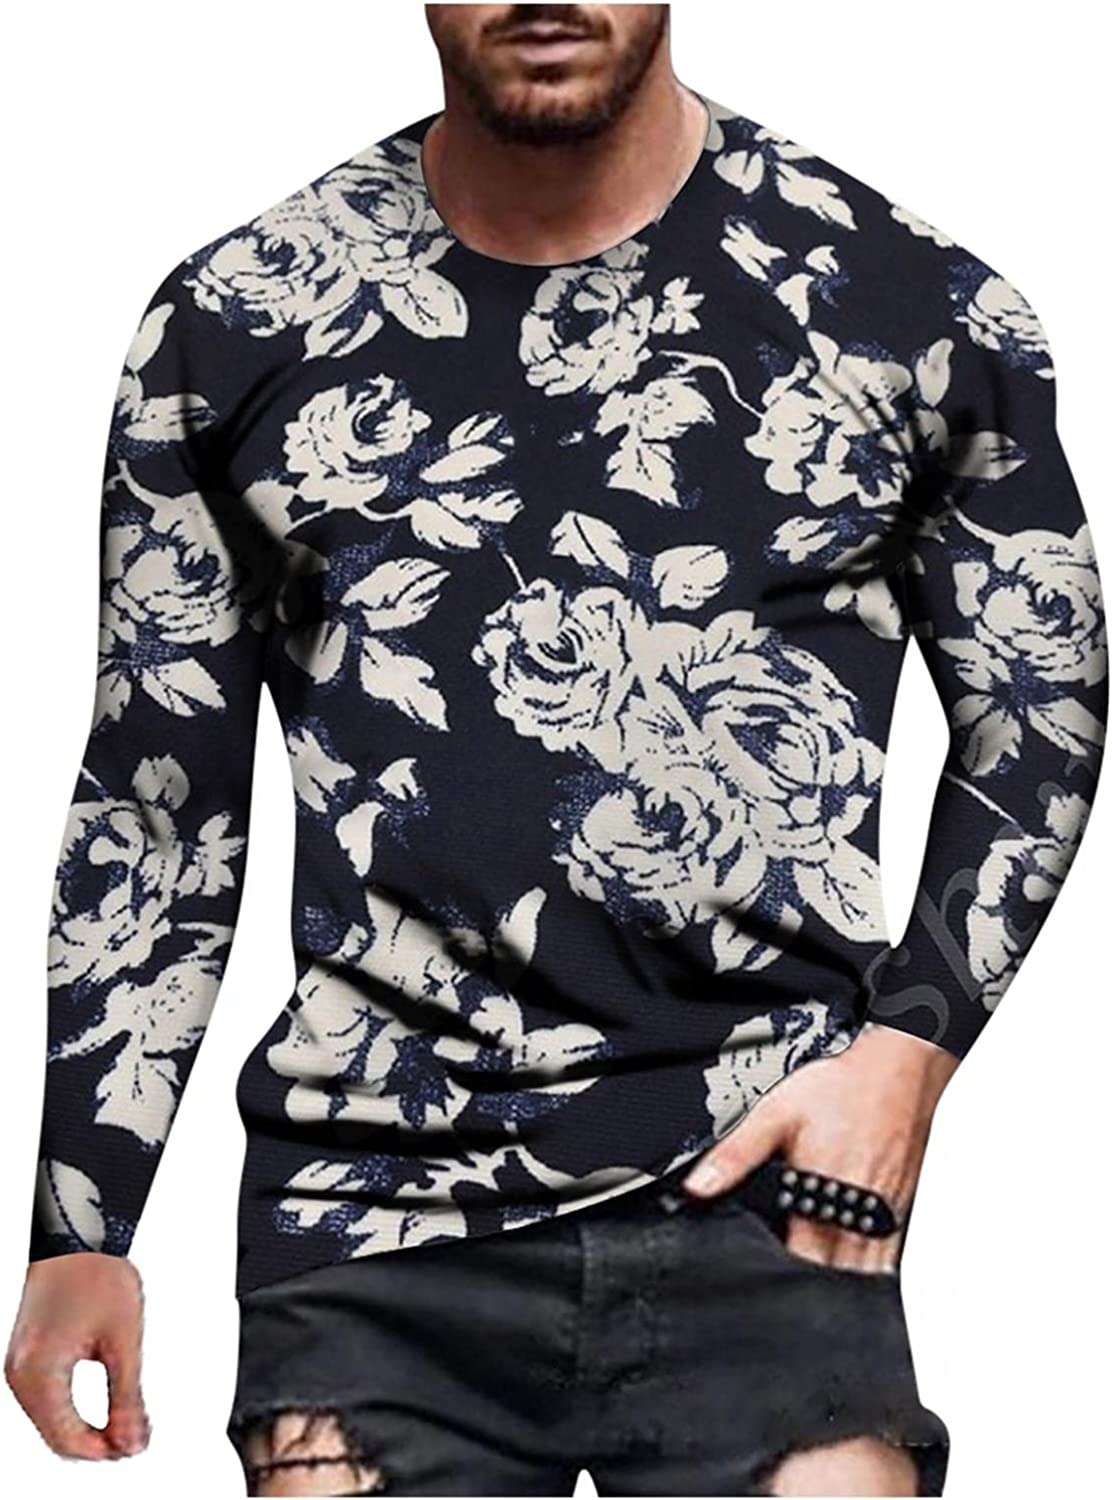 FUNEY Vintage Graphic Tees Men Fashion Funny 3D Print Muscle Fitness Long Sleeve Round Neck Tops Novelty Design T-Shirts